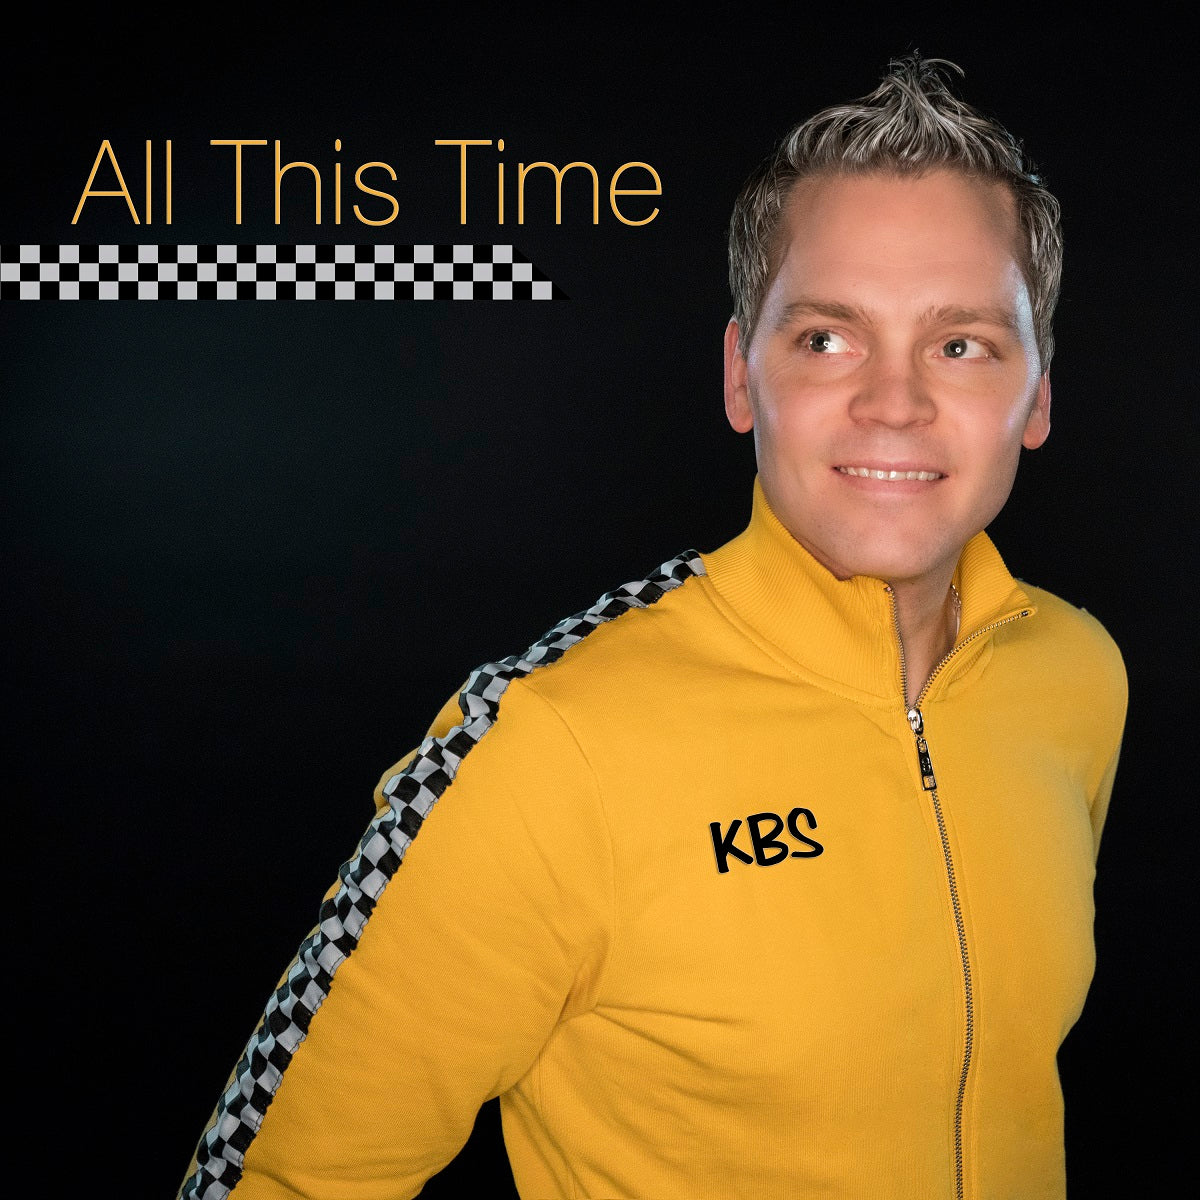 Kyrre Bjørdal Sæther – 'All This Time (Single)'